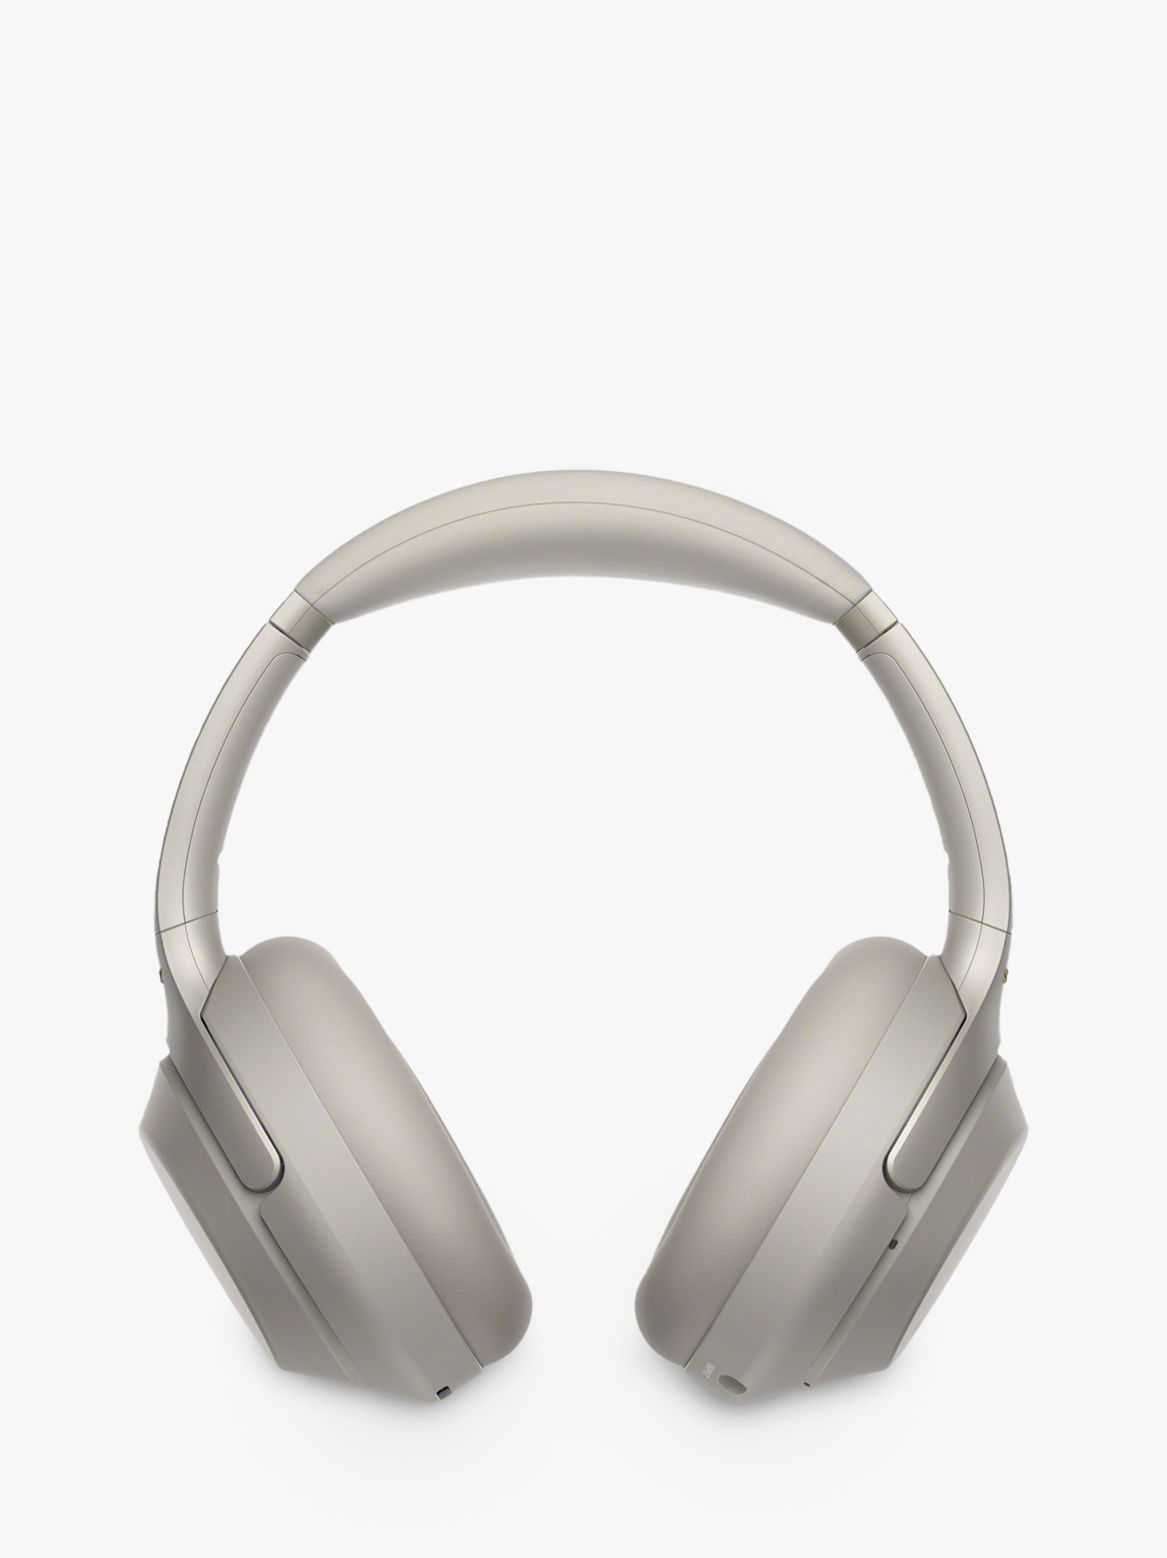 Sony Sony WH-1000XM3 Noise Cancelling Wireless Bluetooth NFC High Resolution Audio Over-Ear Headphones with Mic/Remote